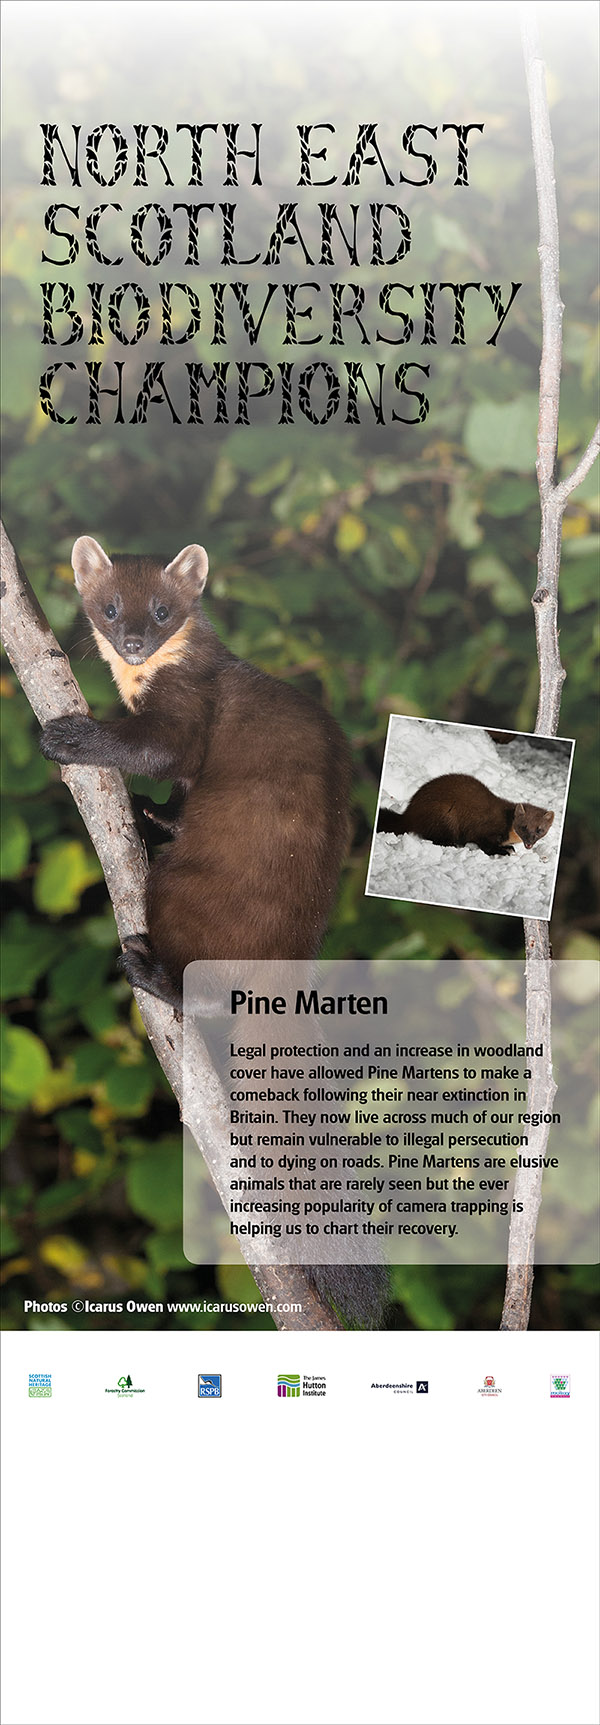 Pine marten images on North East Biodiversity Partnership pull-up